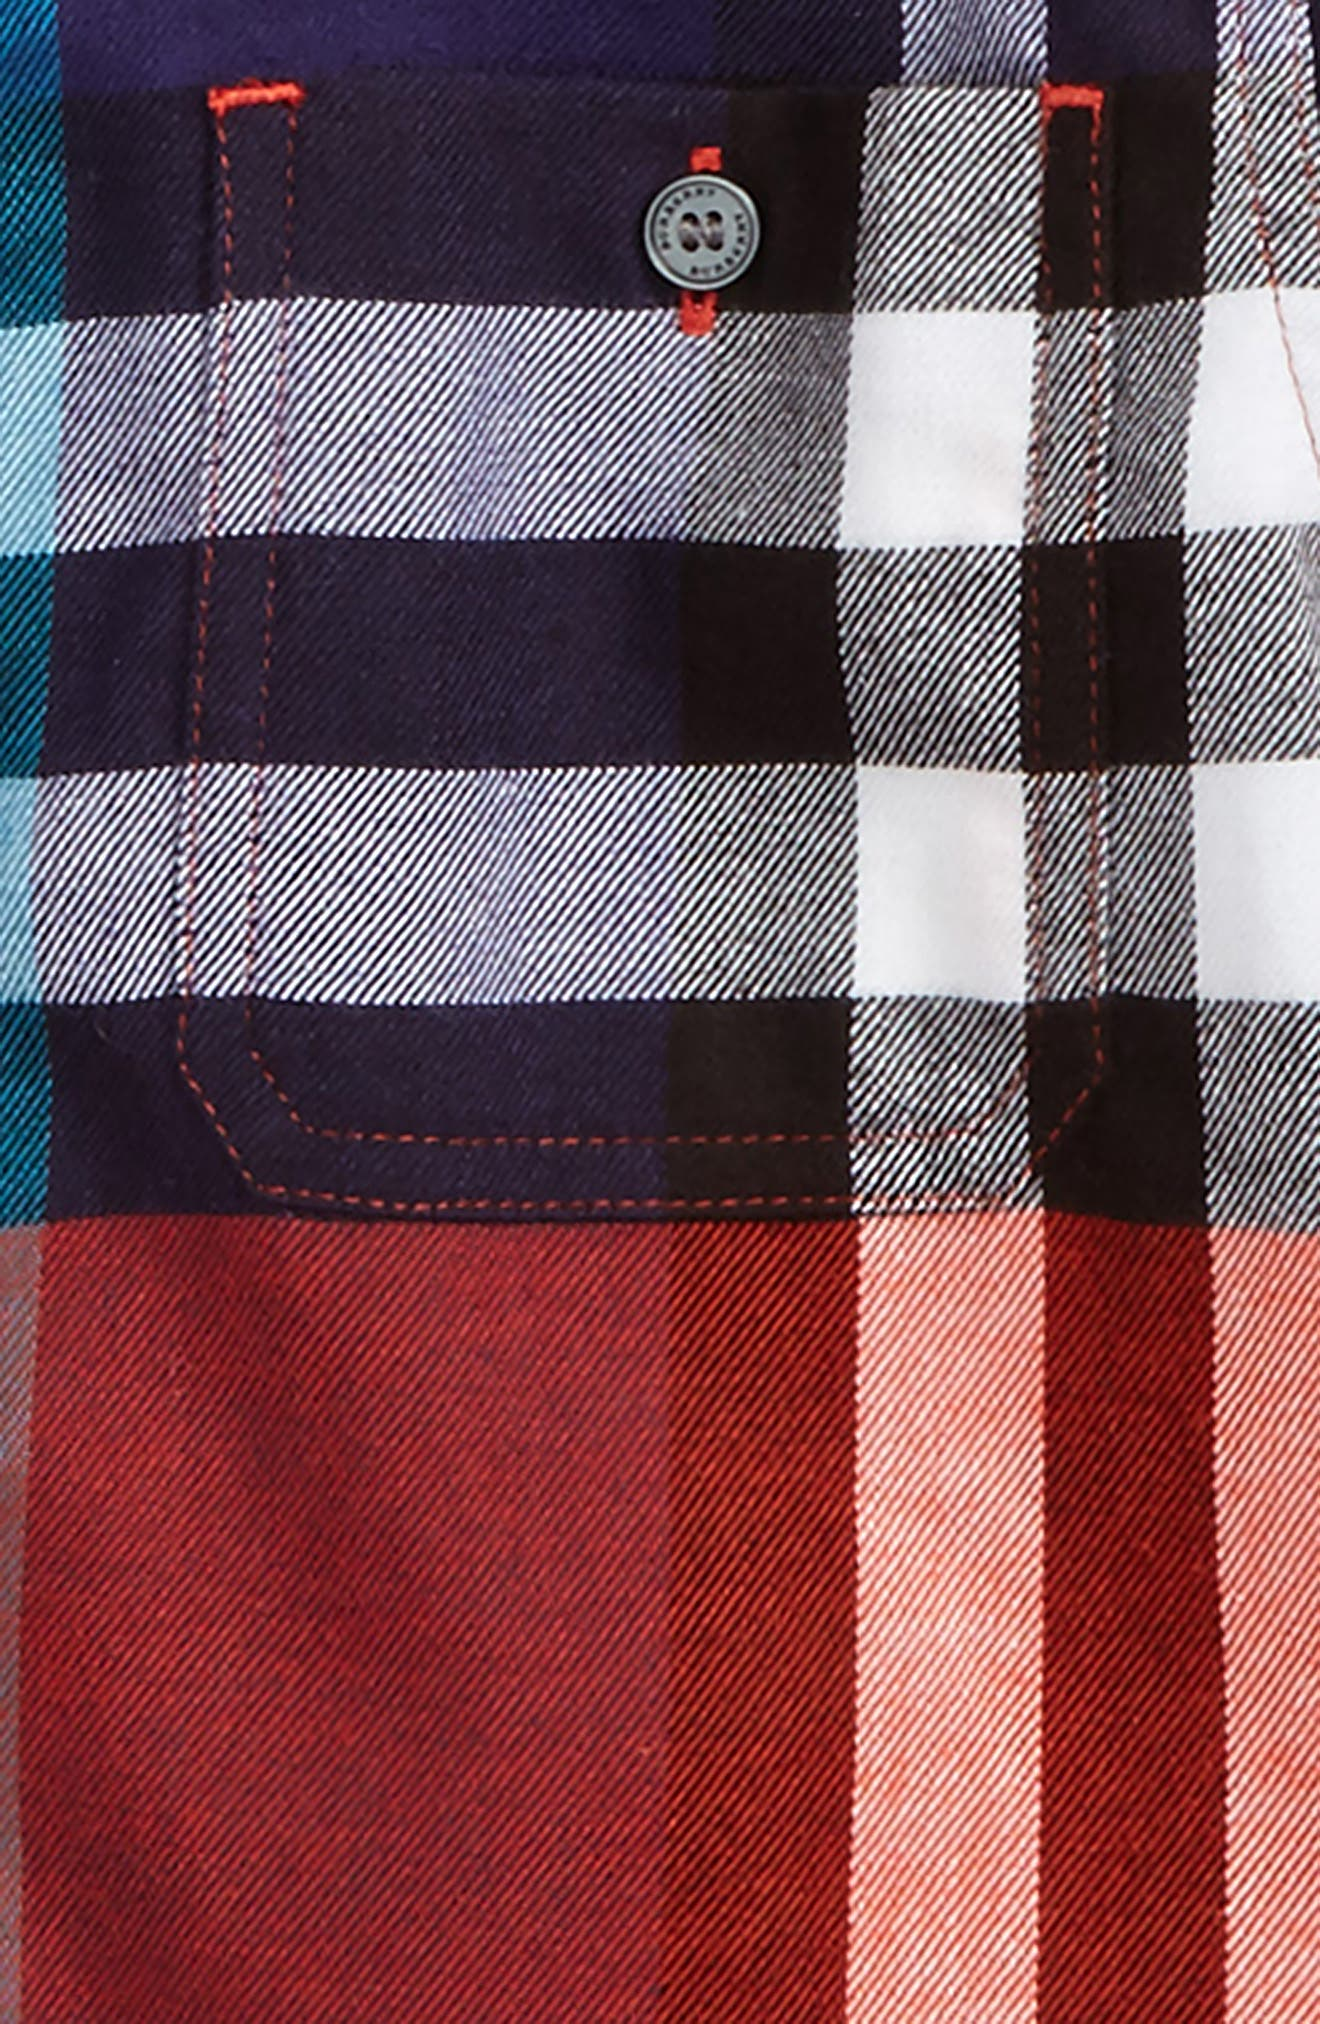 Alternate Image 2  - Burberry Mini Camber Check Shirt (Little Boys & Big Boys)